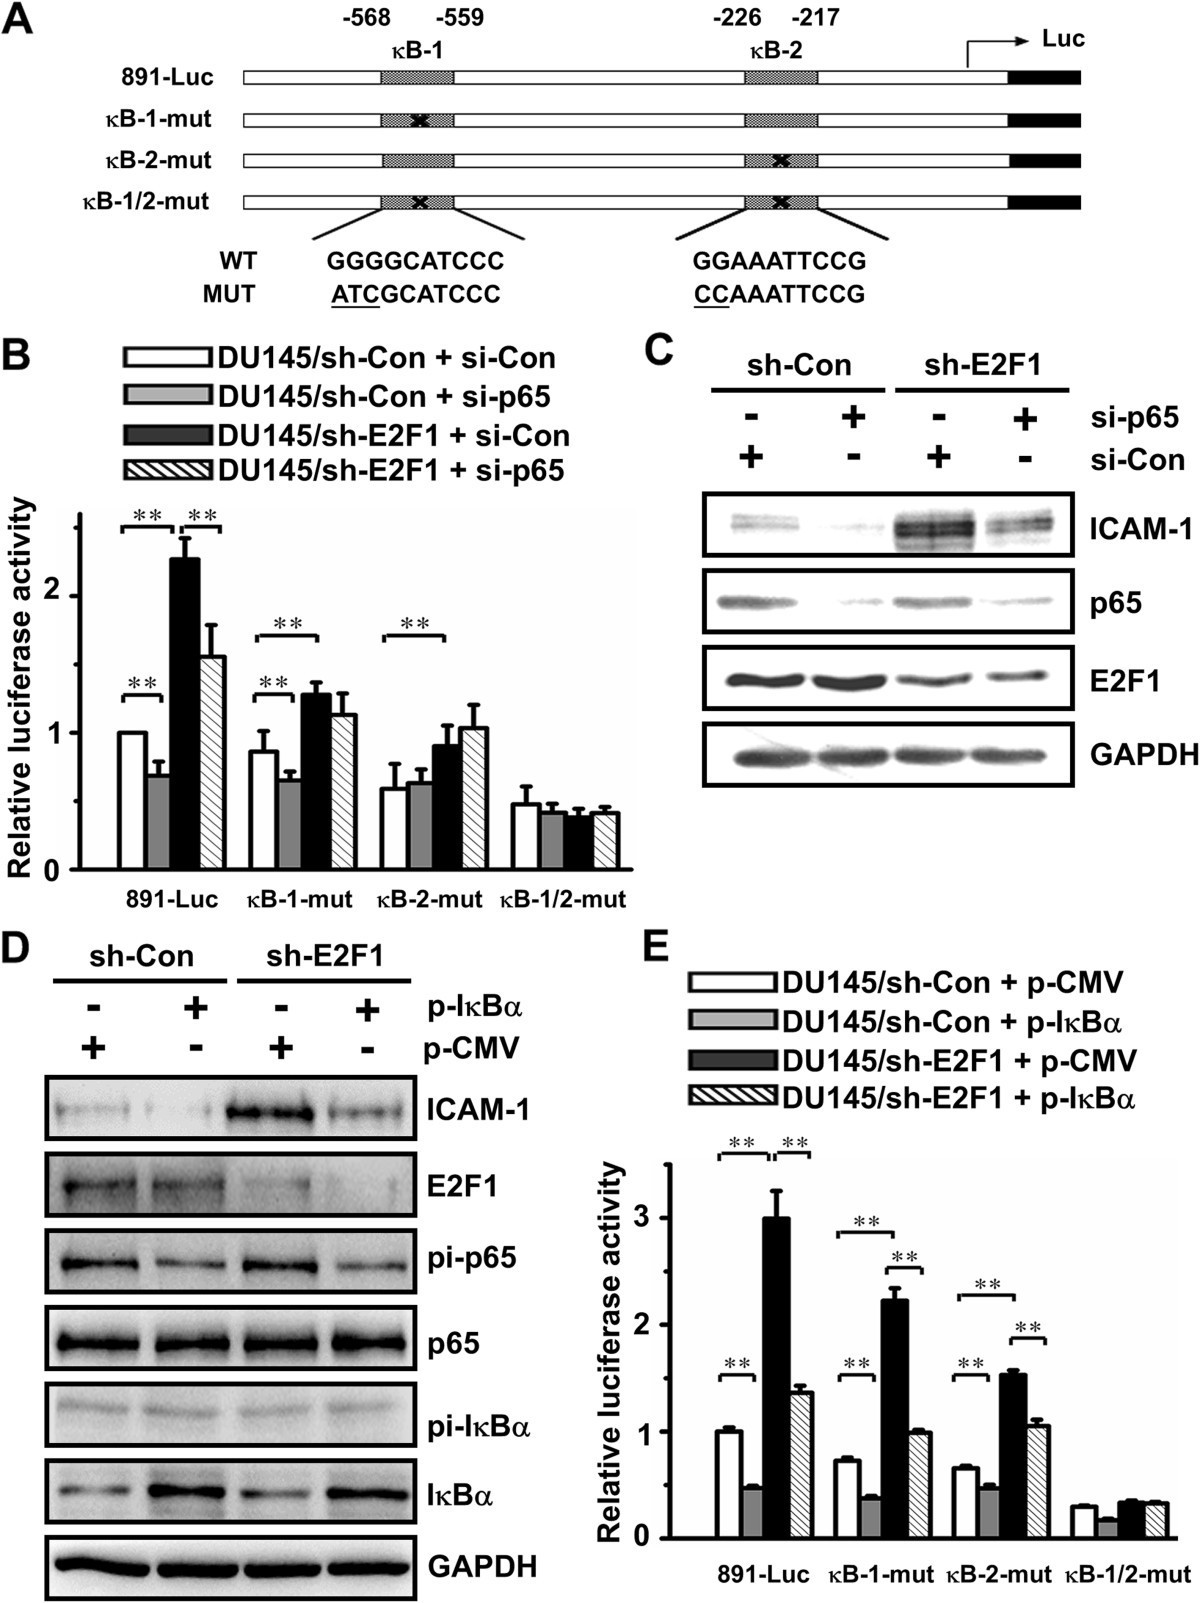 E2f1 Renders Prostate Cancer Cell Resistant To Icam 1 Mediated